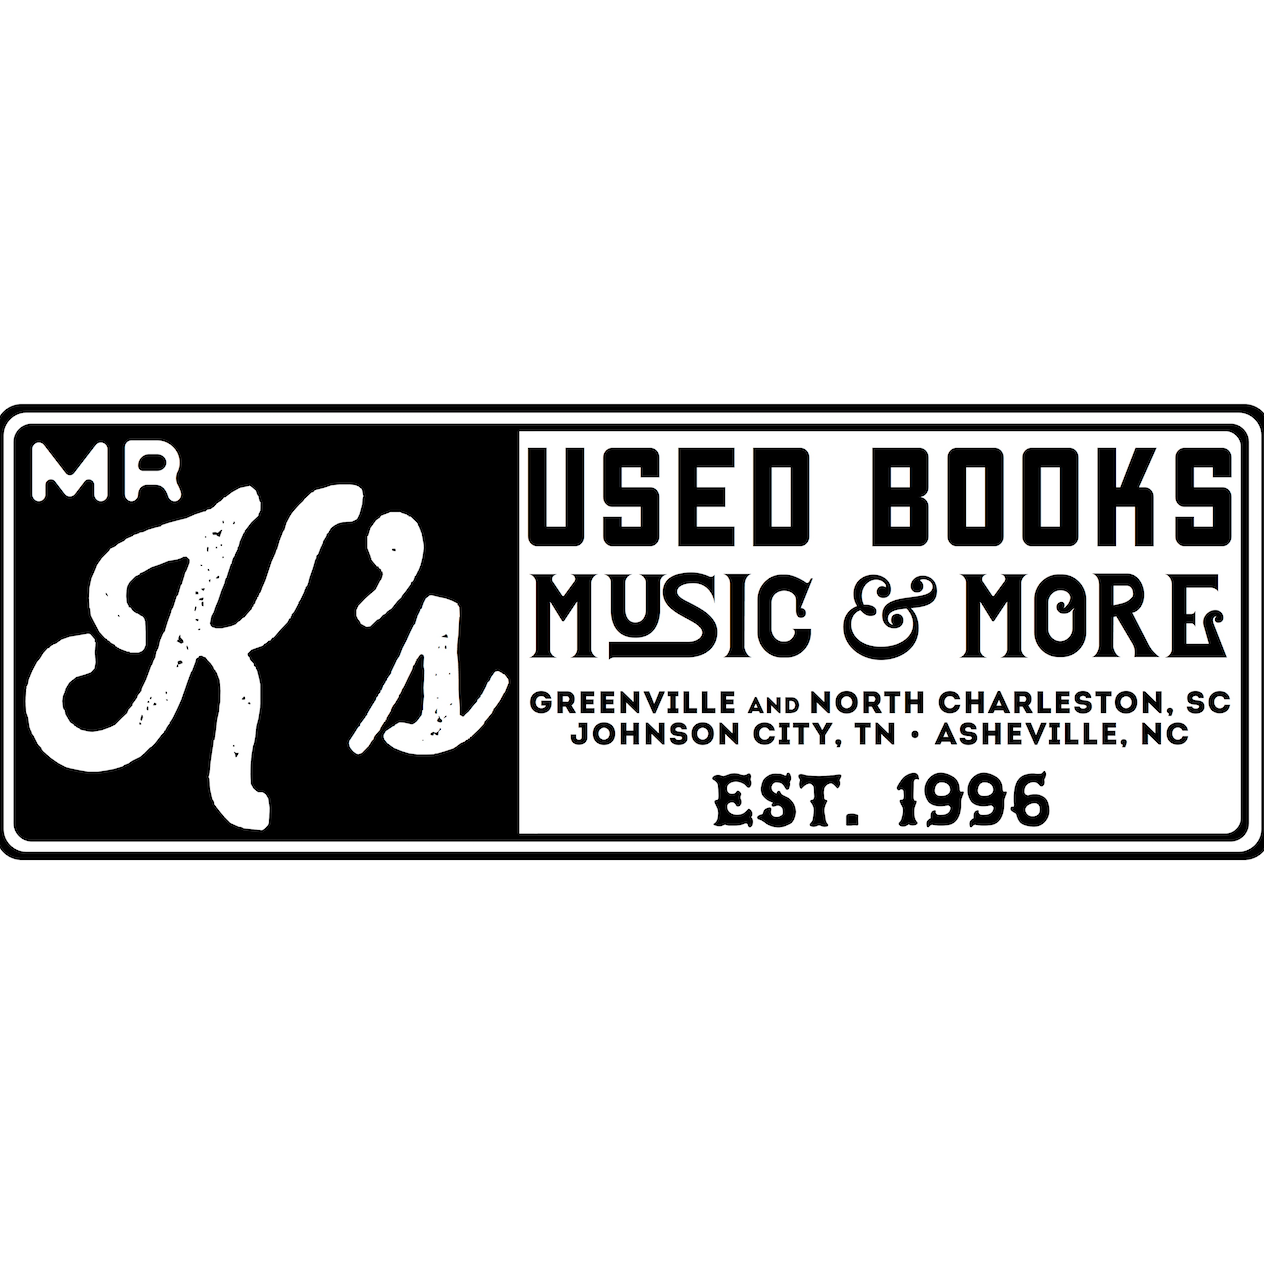 Mr K's Used Books, Music and More